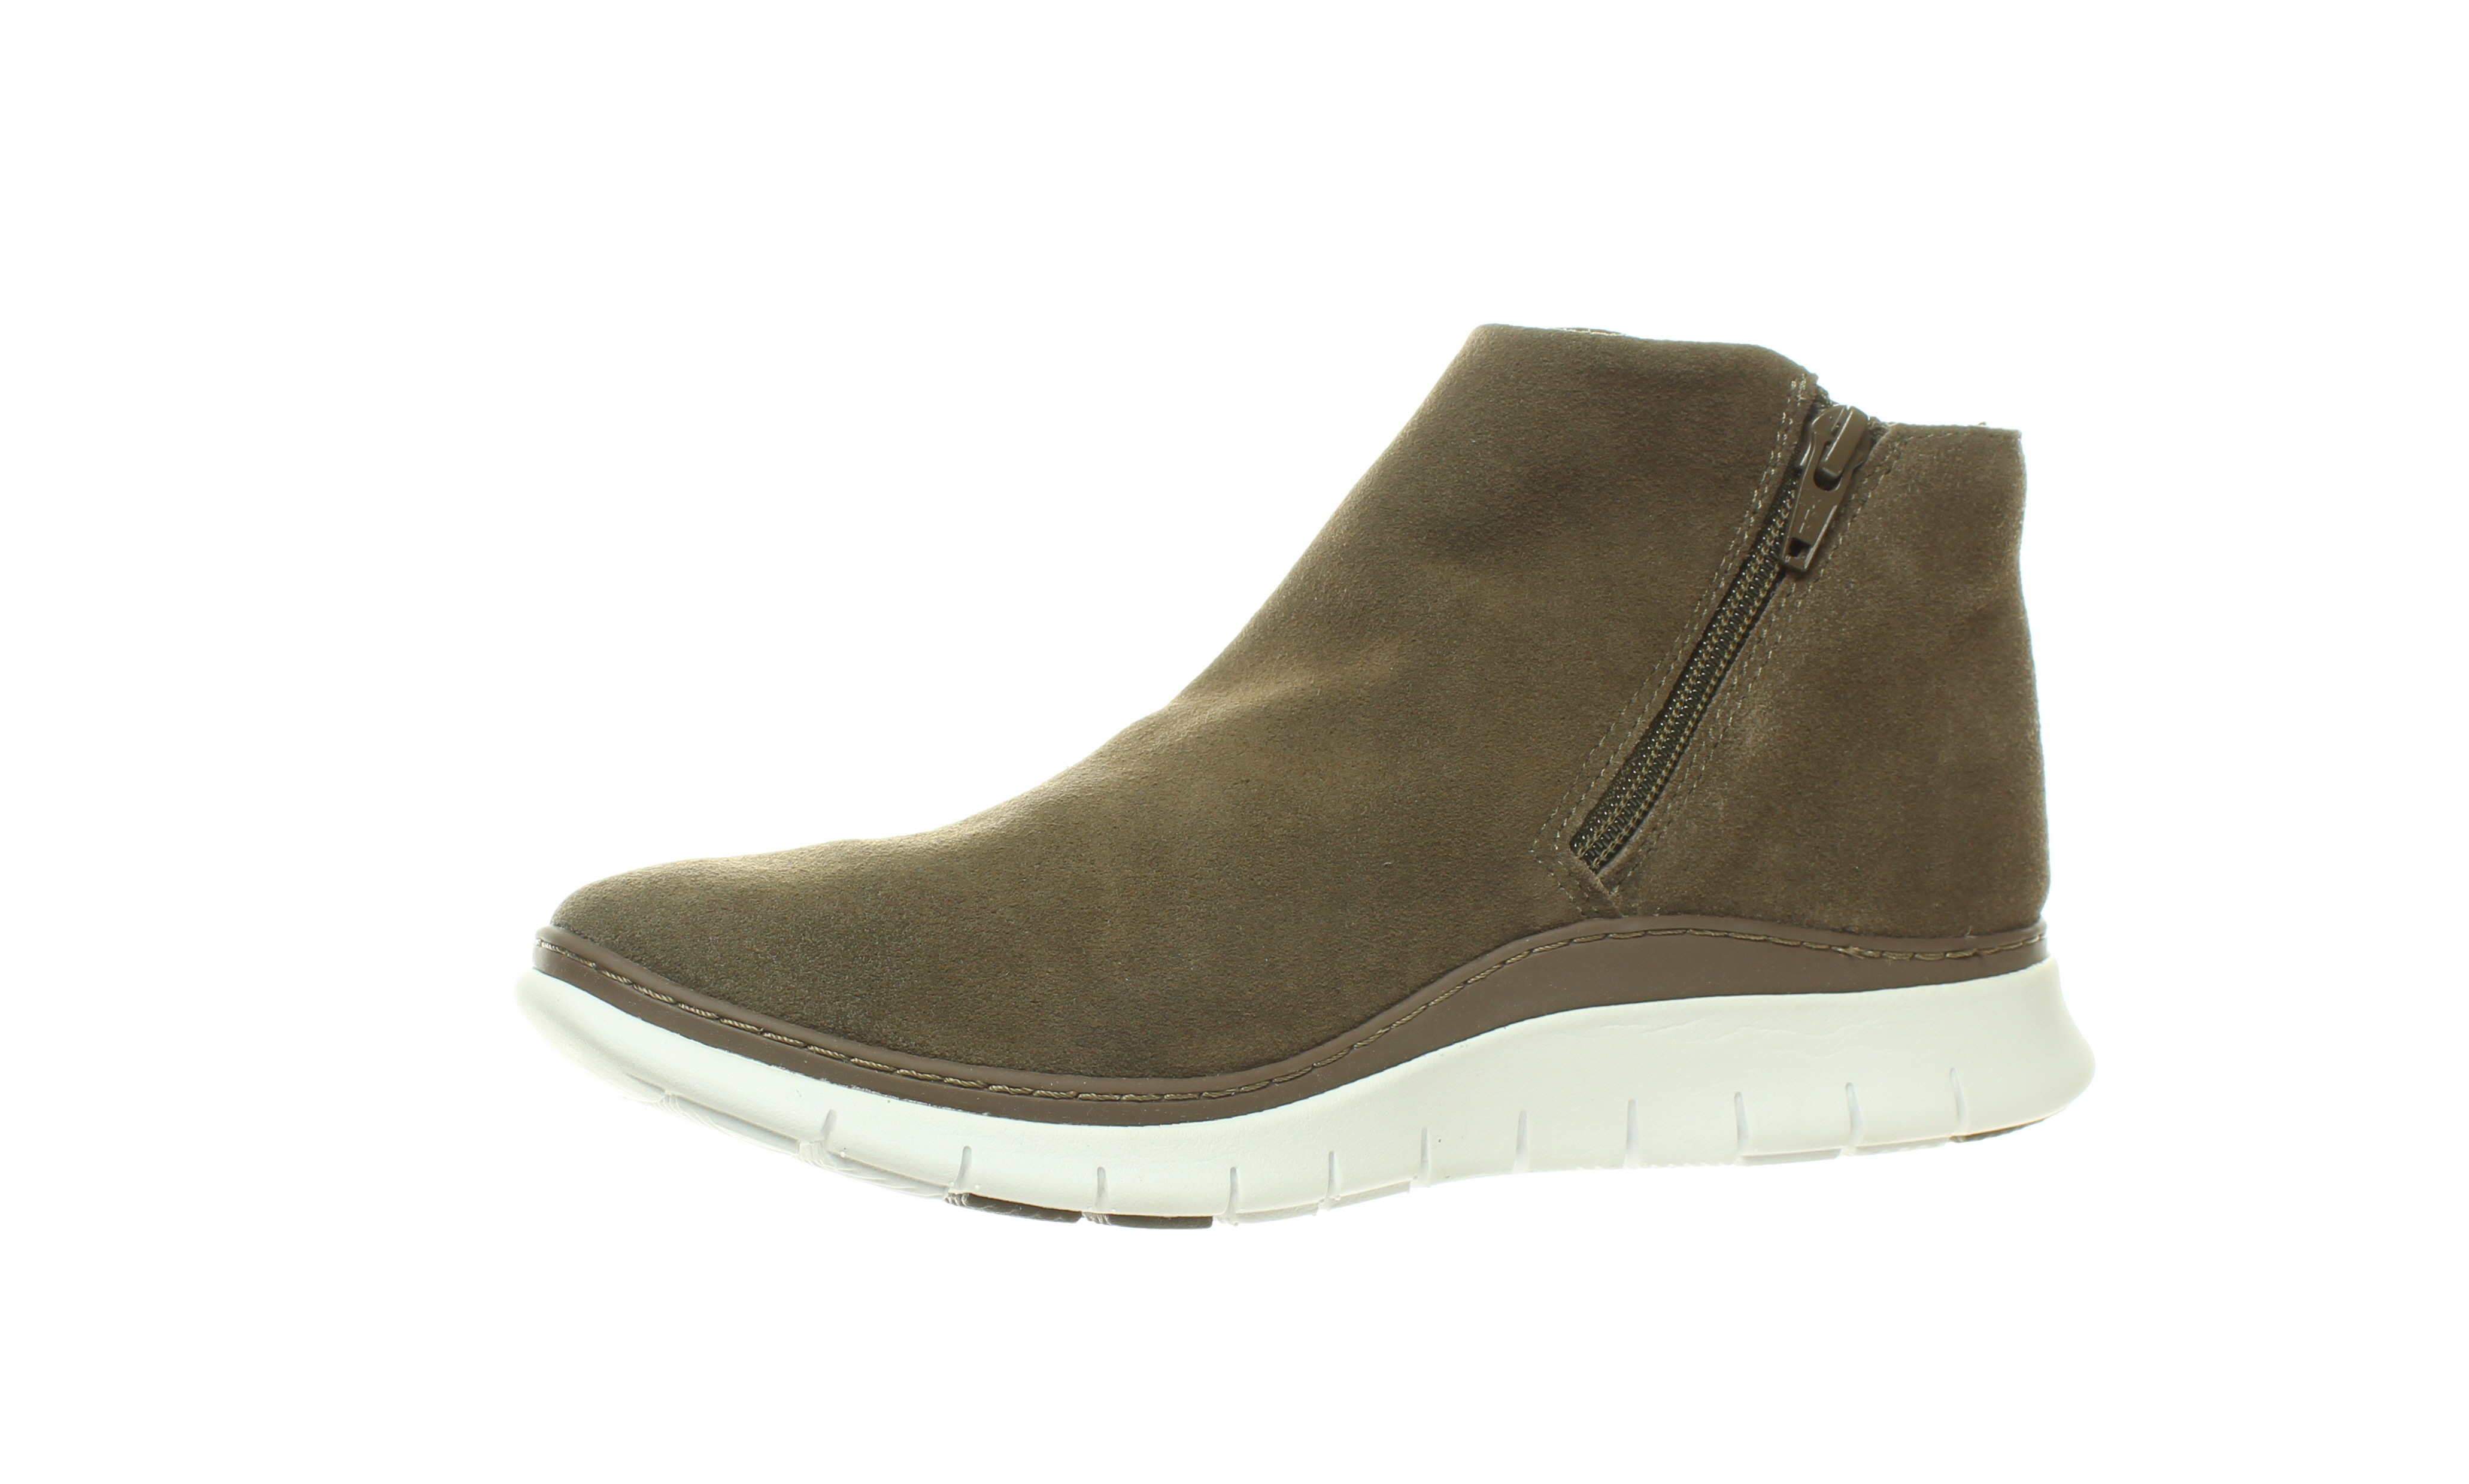 Vionic-Womens-Fresh-Dylan-Suede-Side-Zip-Casual-Comfort-Ankle-Boots thumbnail 13